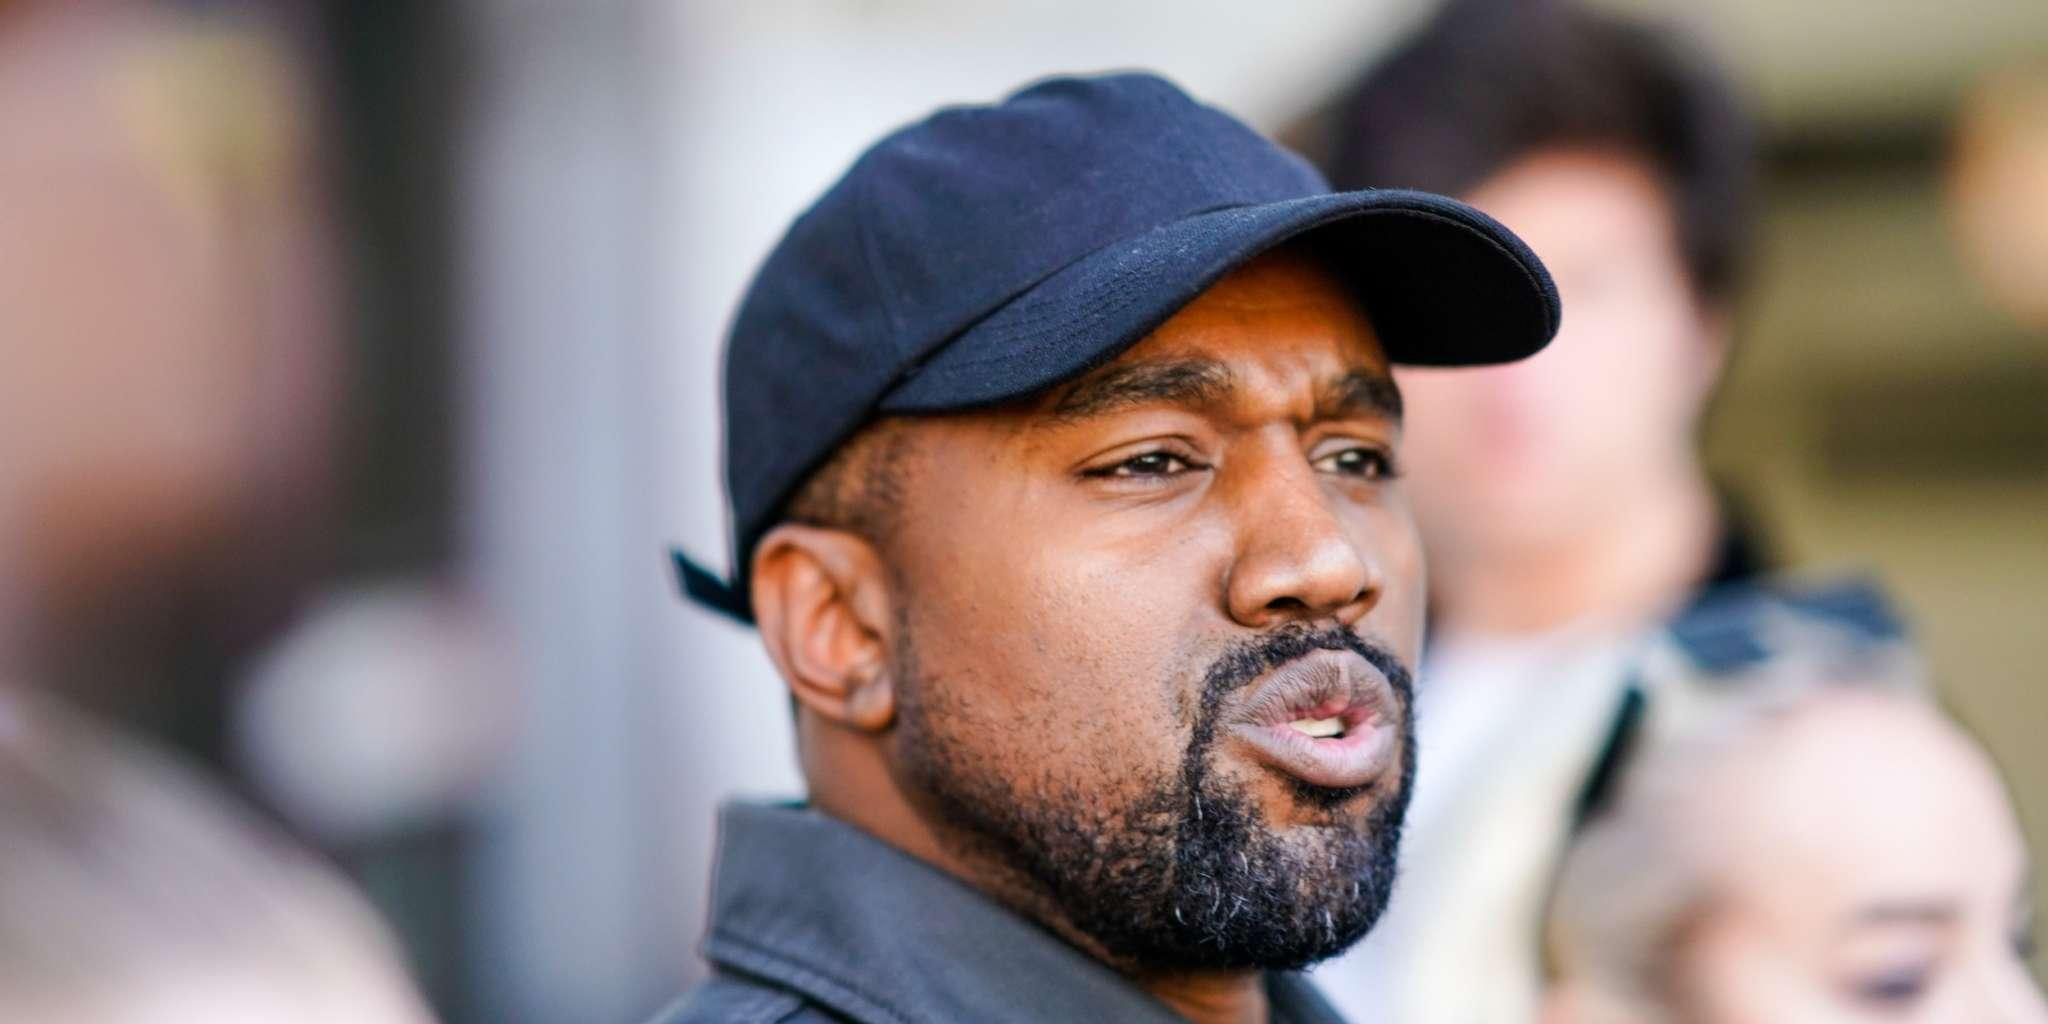 Kanye West Posts And Then Deletes Fetus Pics - 'These Souls Deserve To Live'